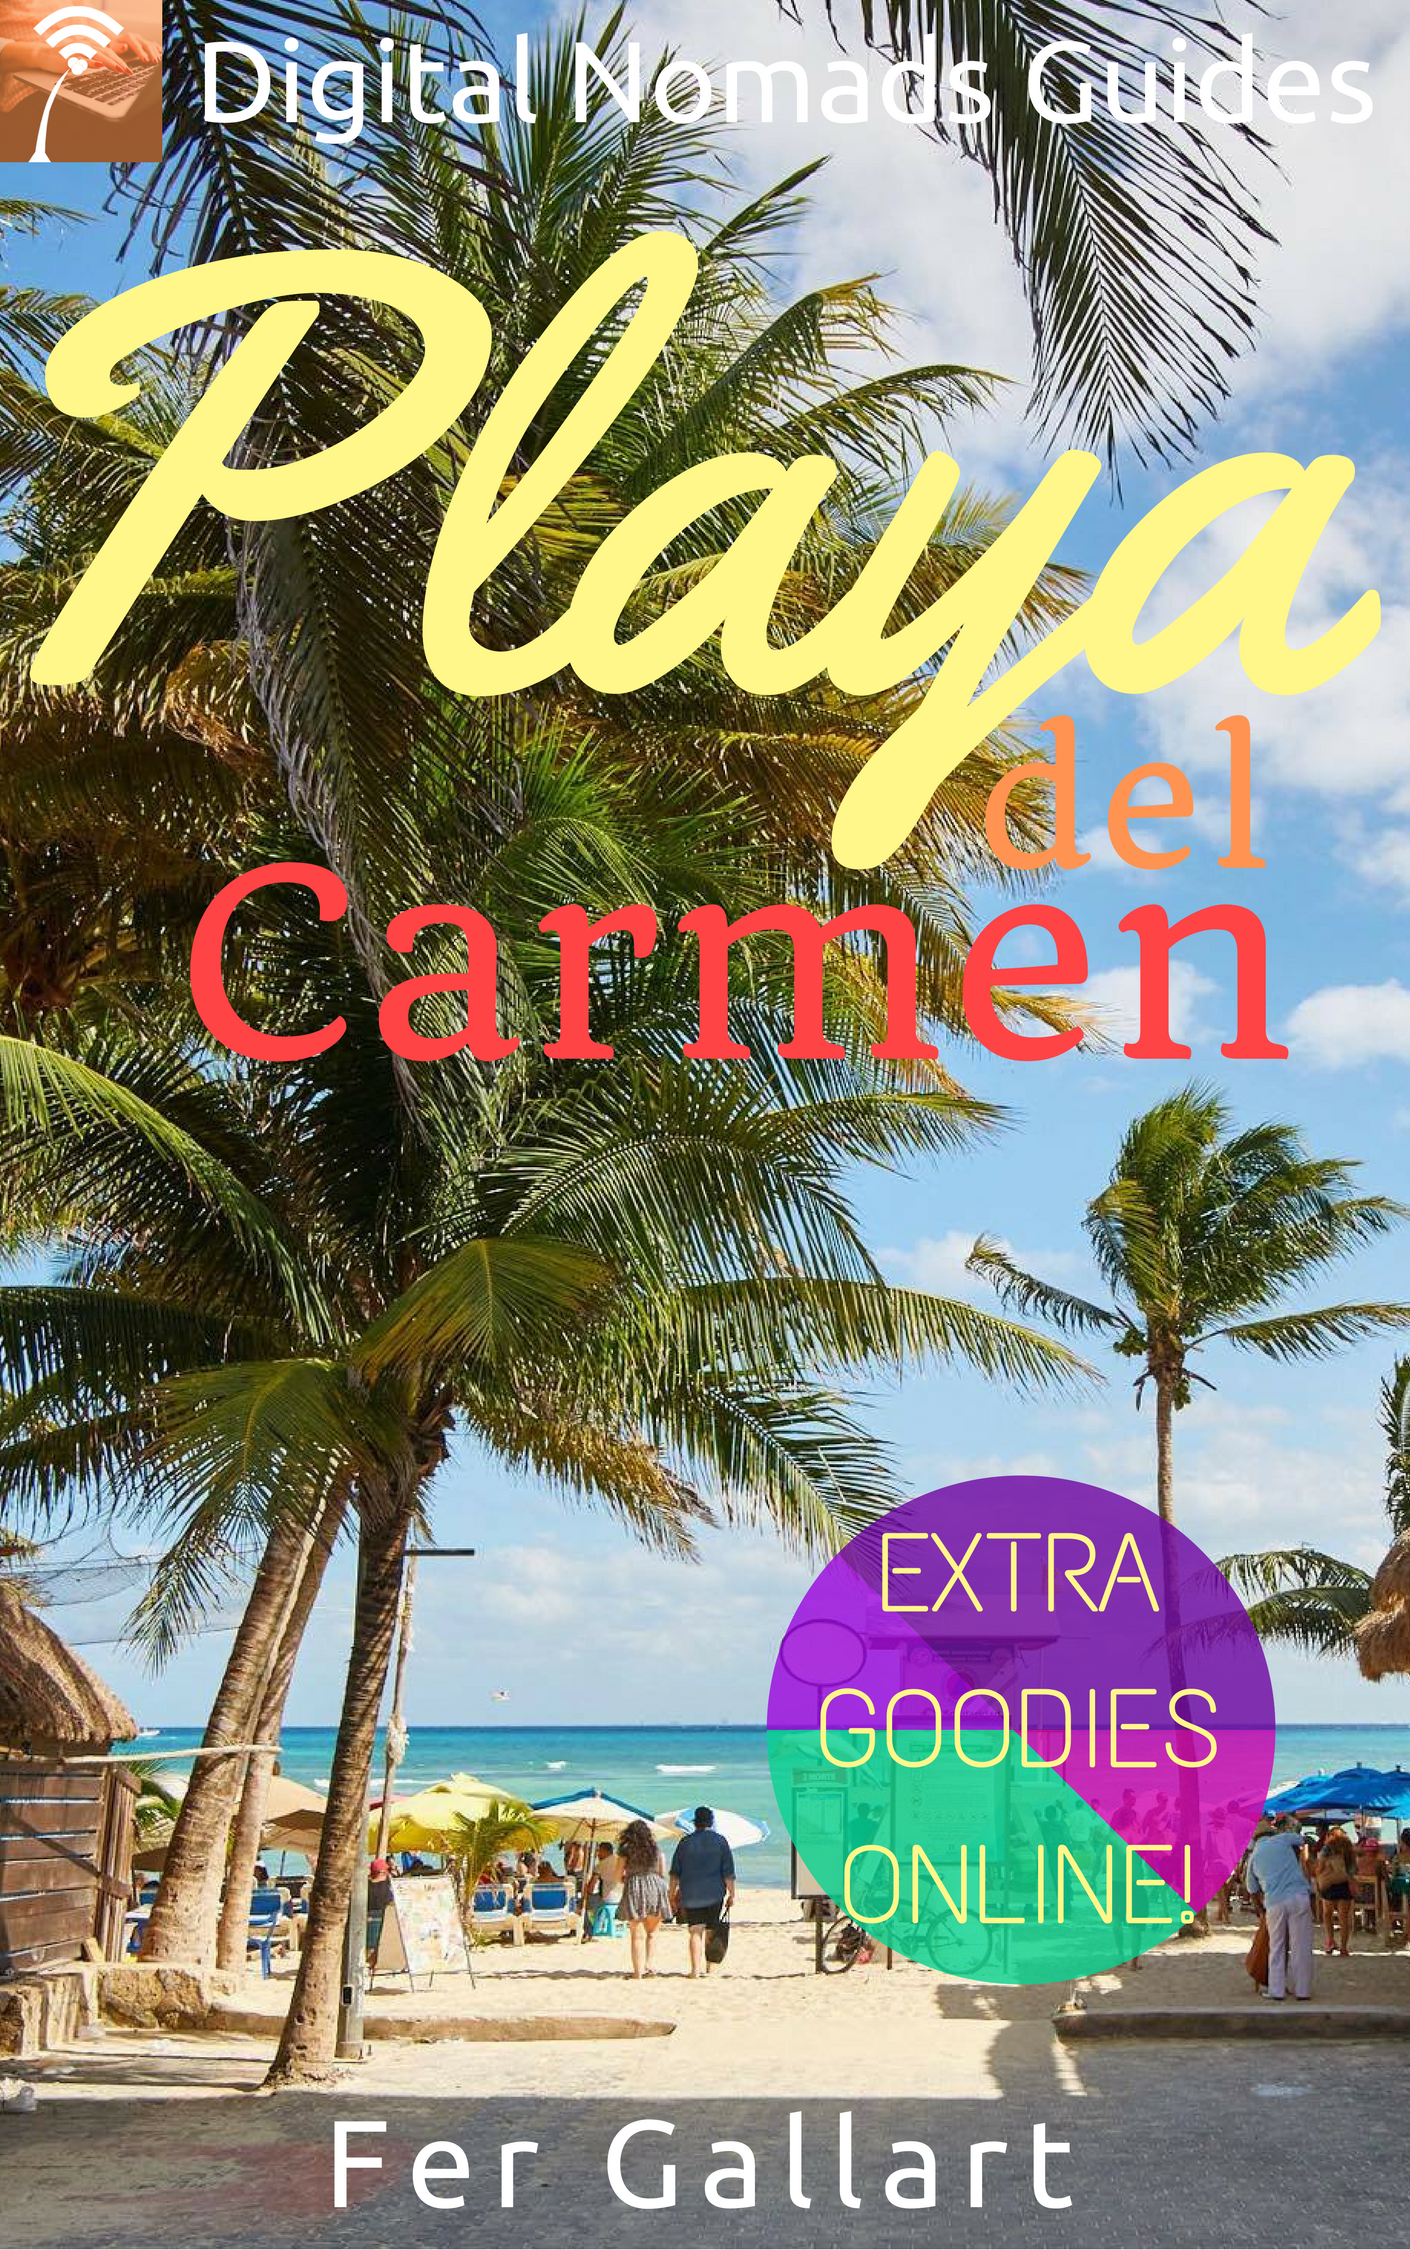 playa del carmen mexico digital nomads guides